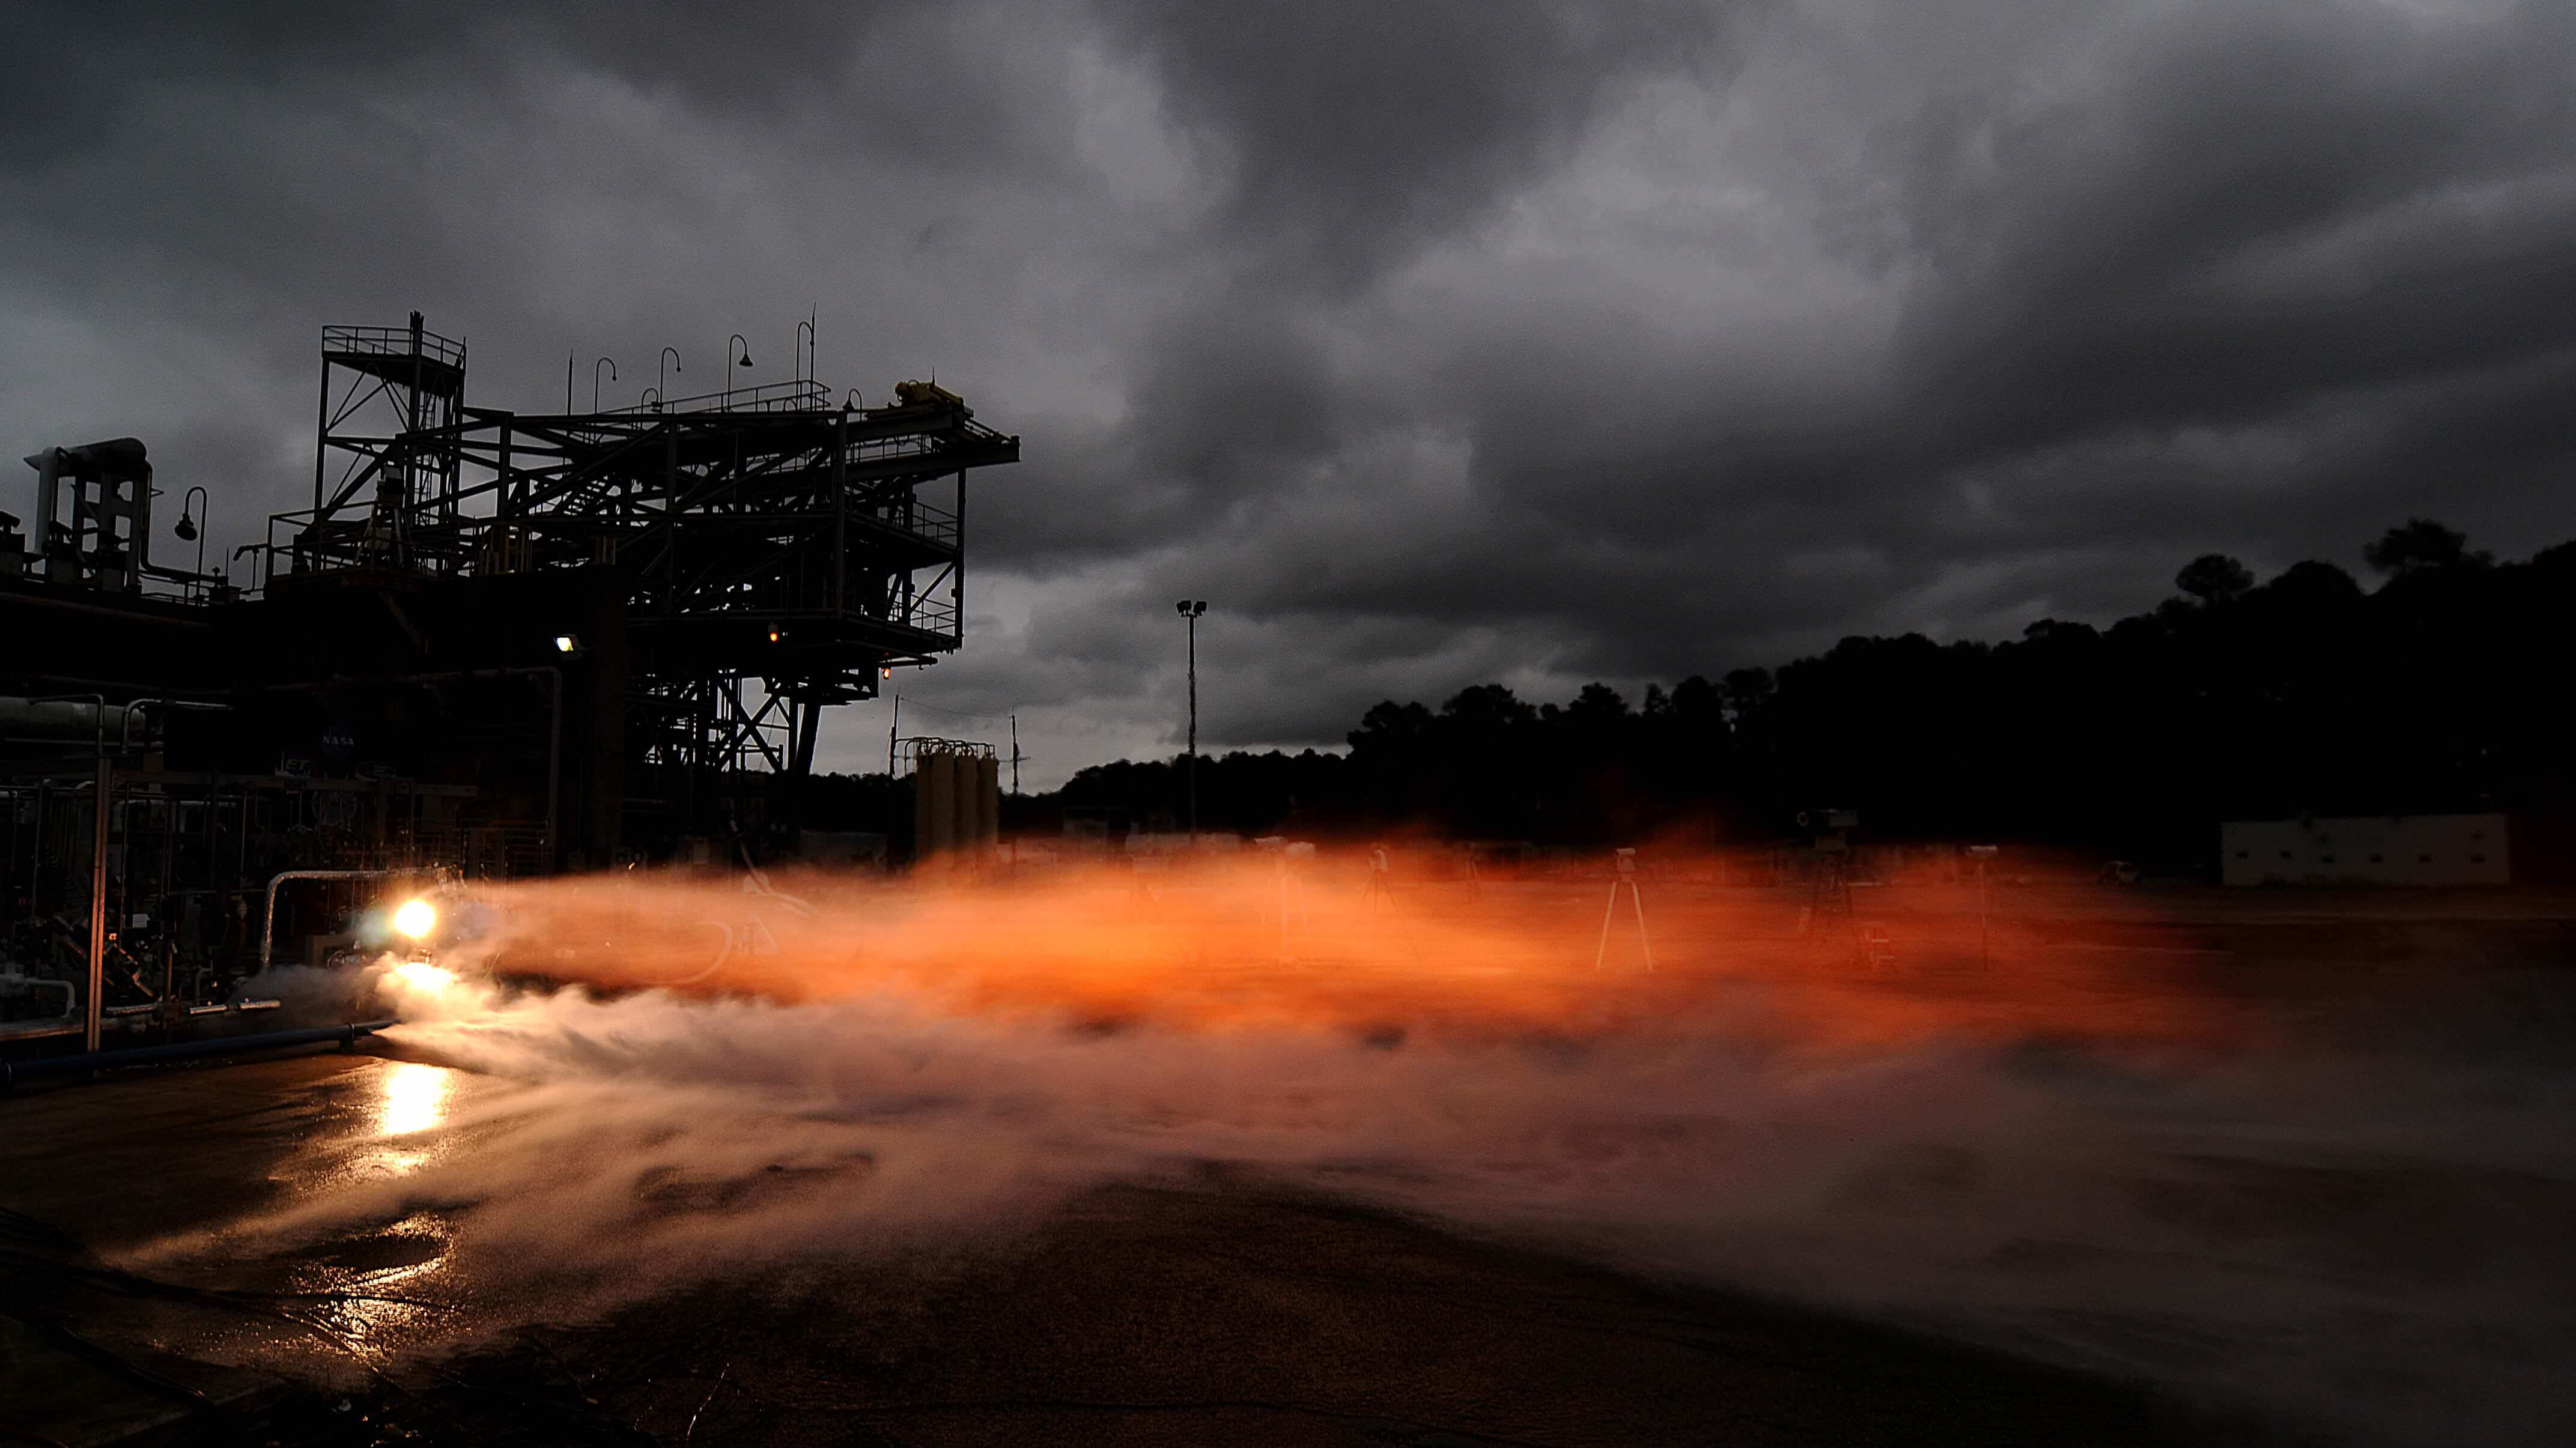 NASA Tested an Almost Completely 3D Printed Rocket | All3DP